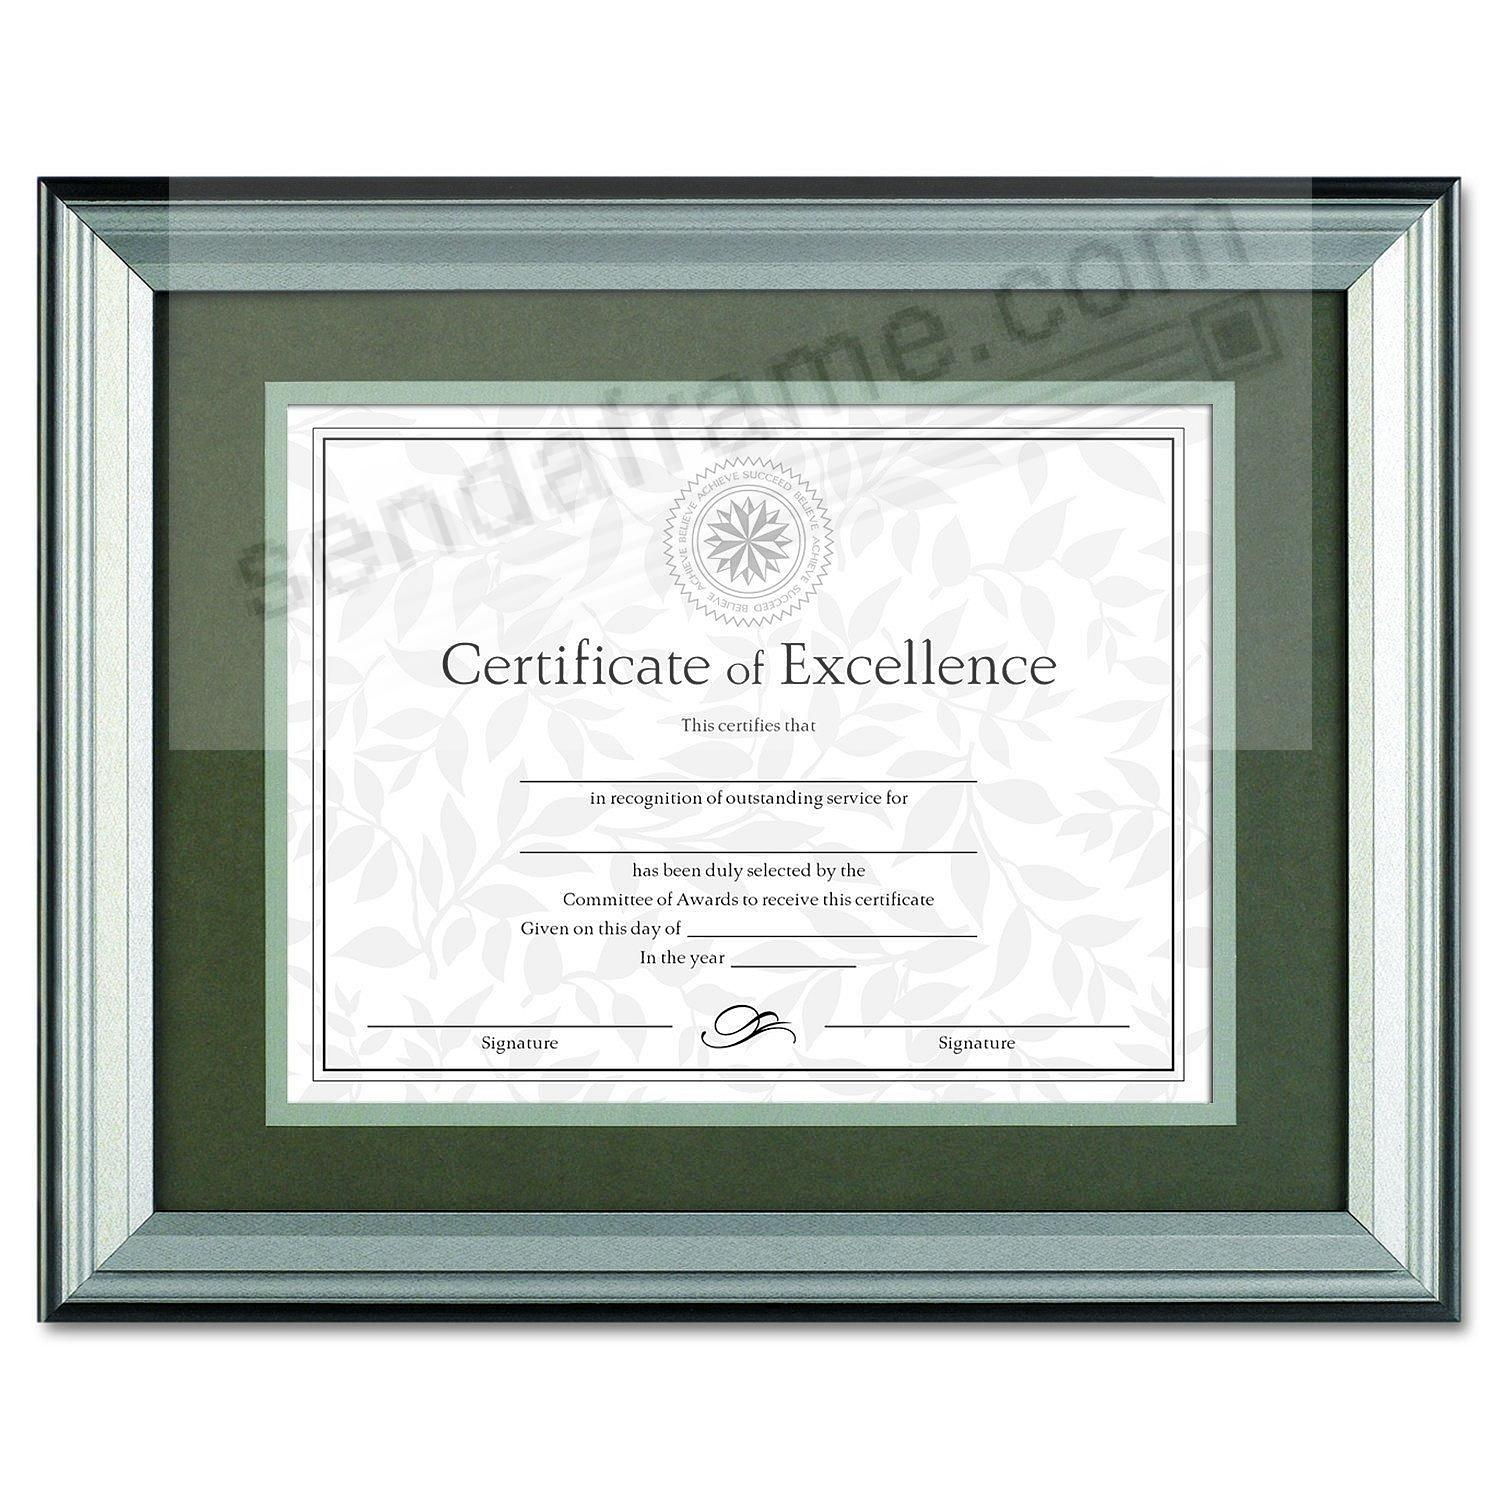 Charcoal nickel document frame 14x11/11x8½ w/mat by Dax®